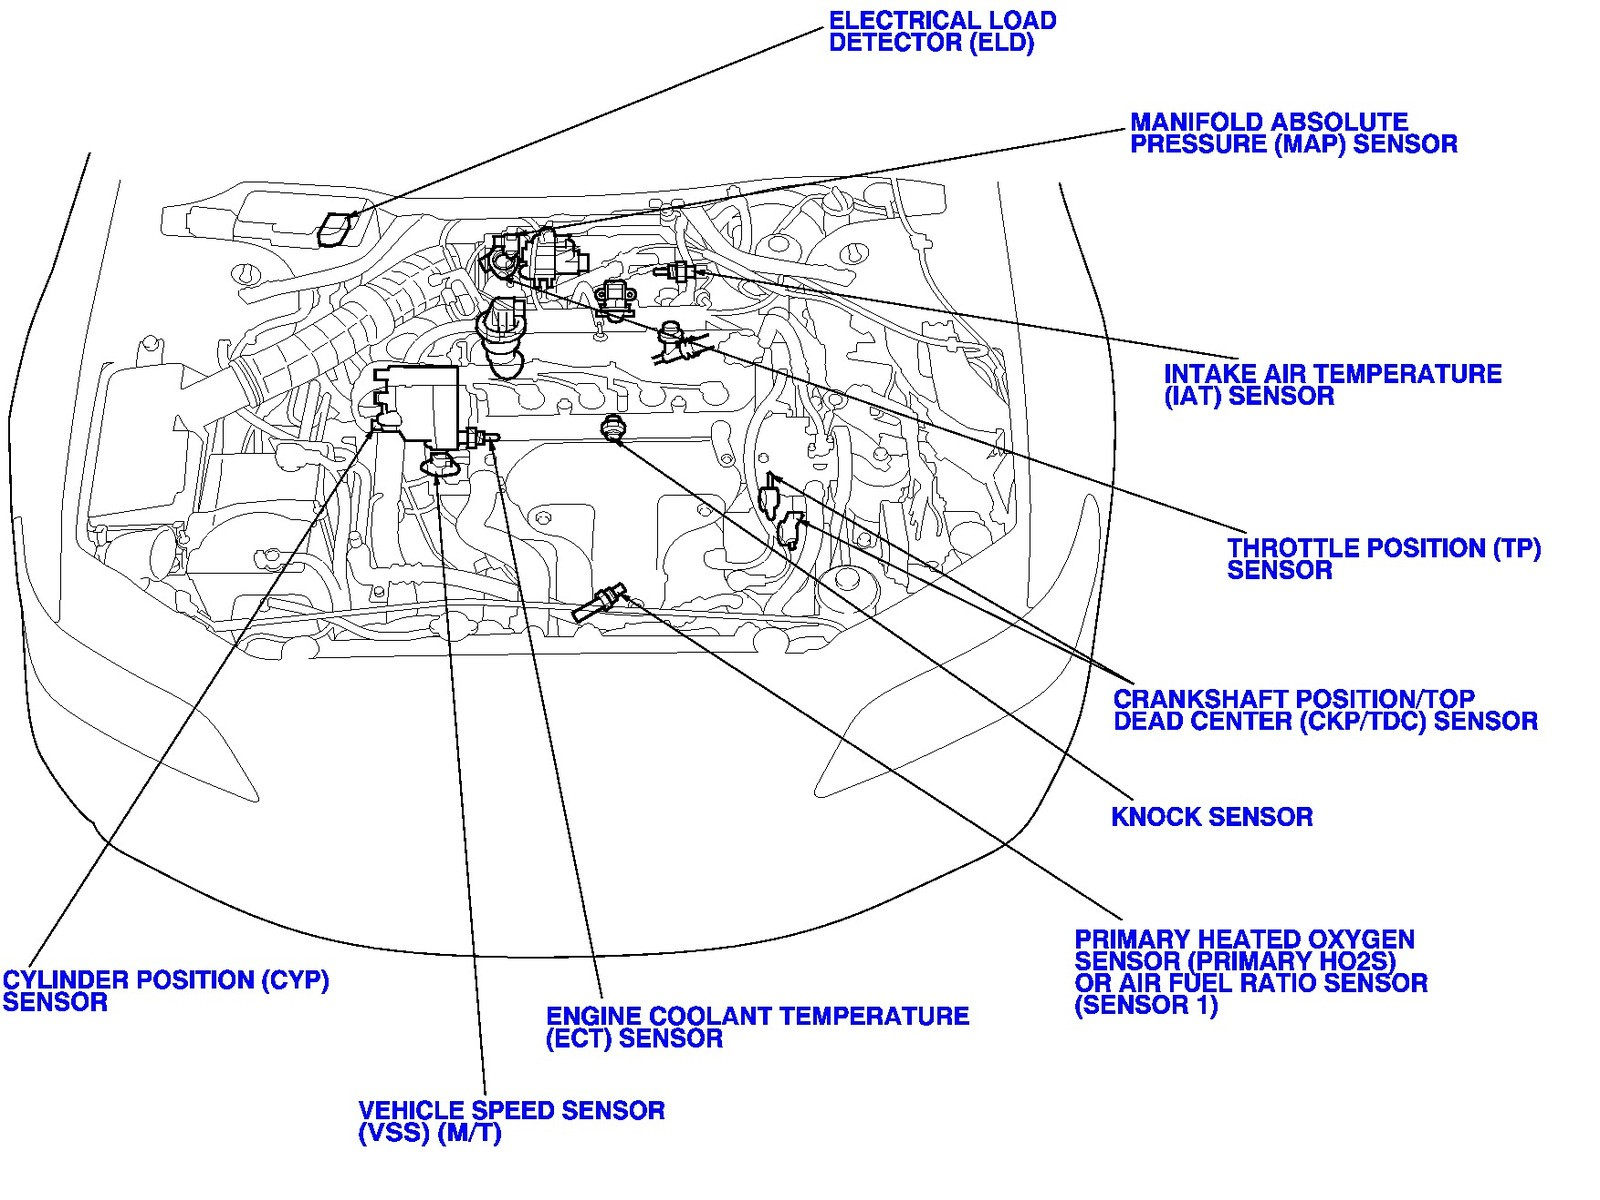 Wiring Diagram Honda Accord Vss